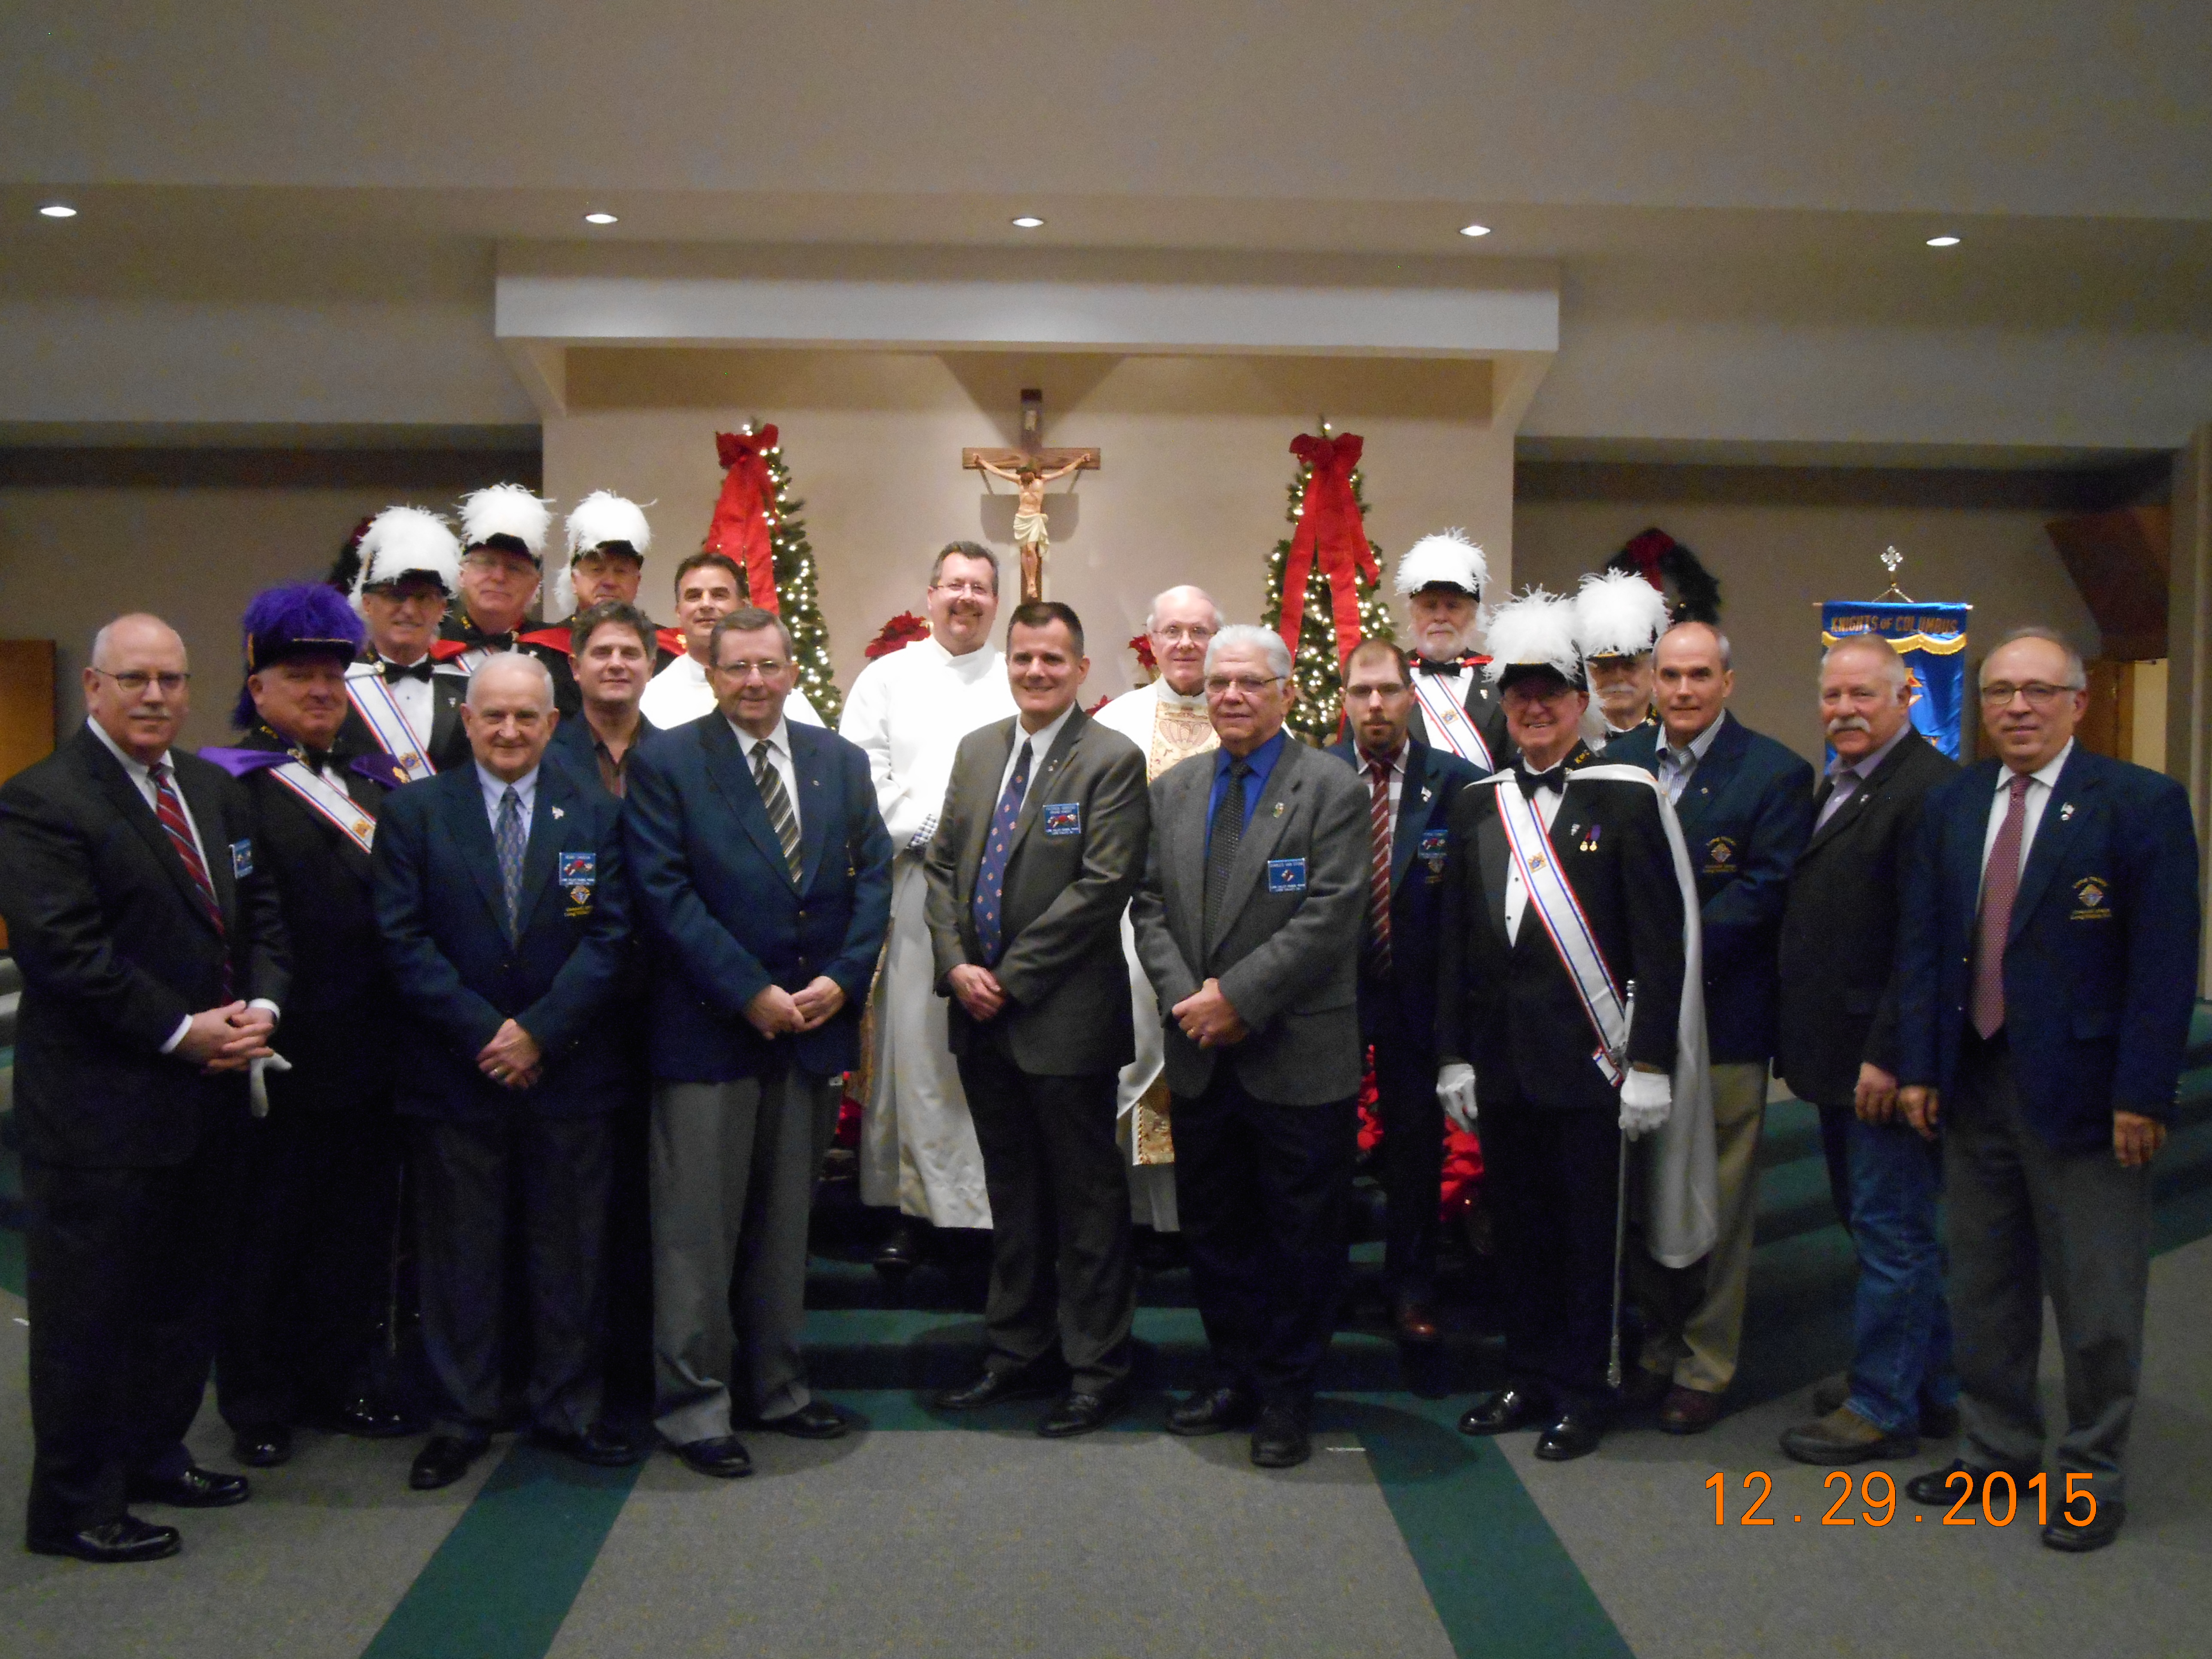 Long Valley Knights of Columbus 2015 Christmas Party and 25th